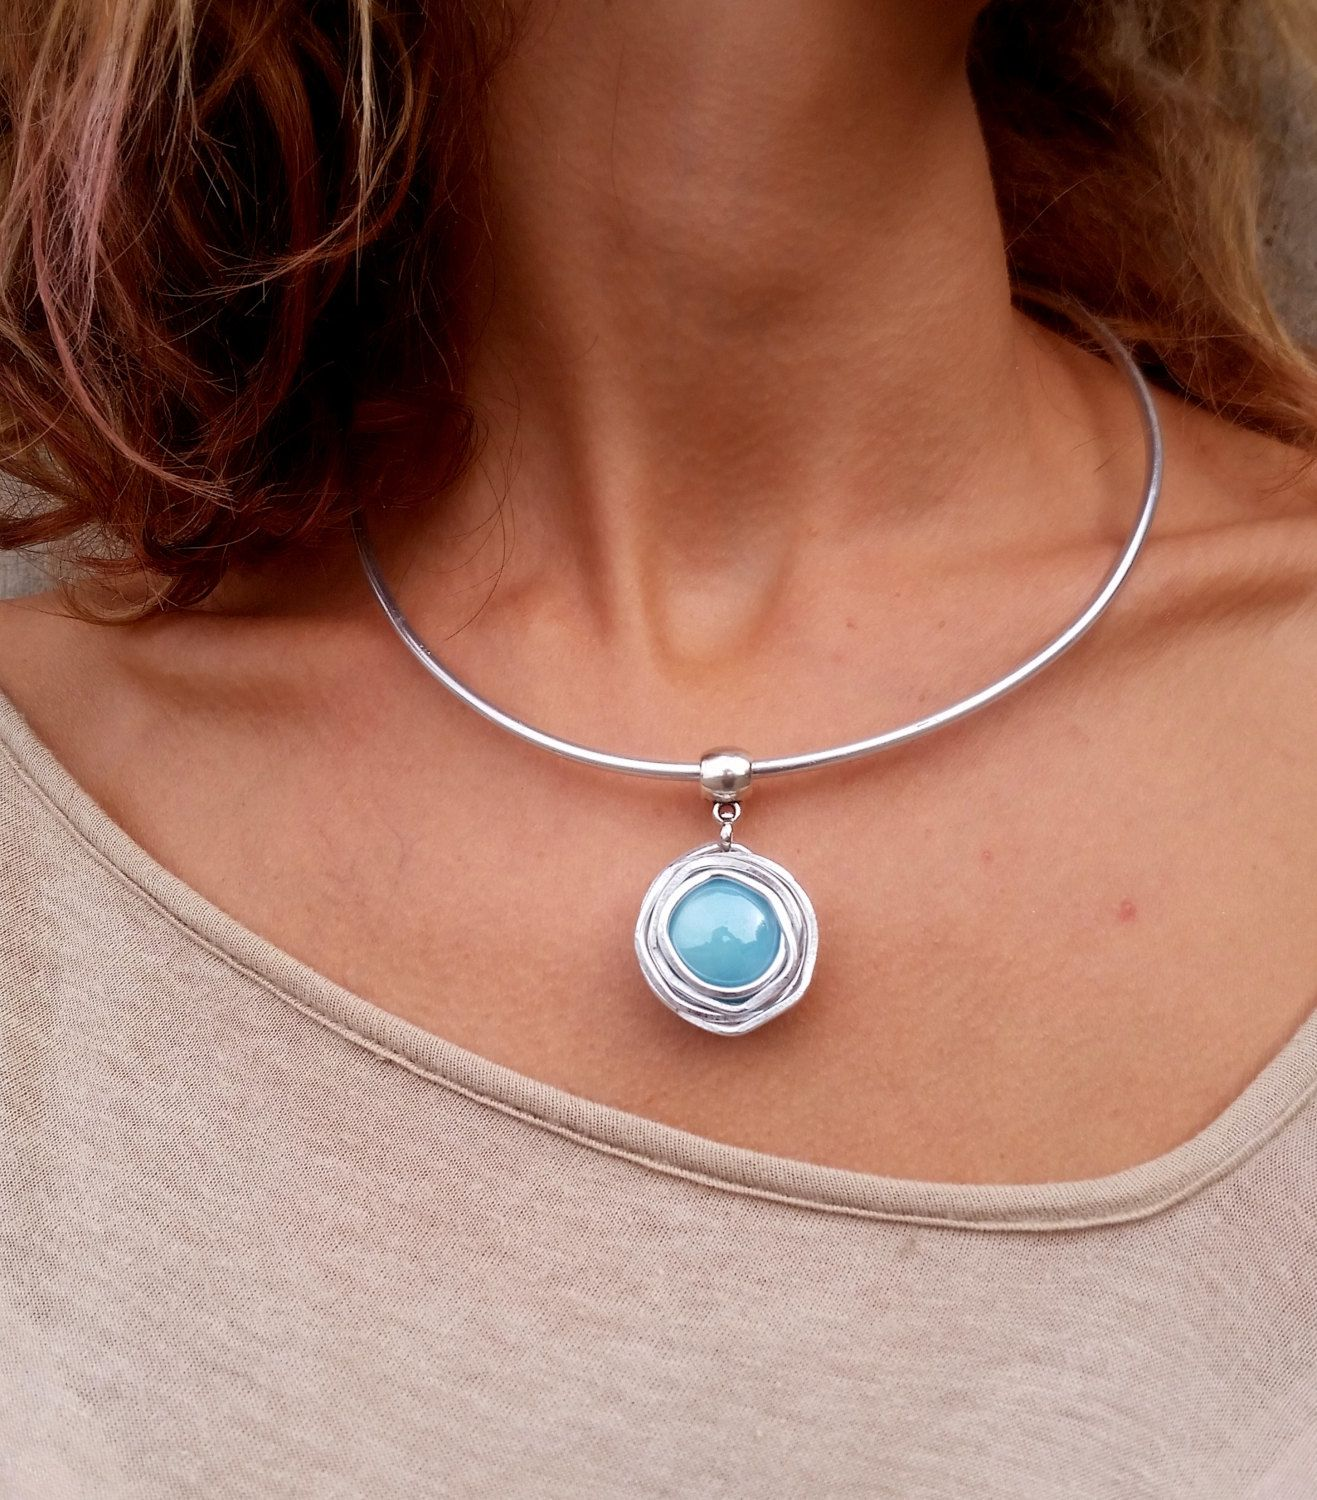 Cuff silver necklace turquoise pendant necklace statement necklace